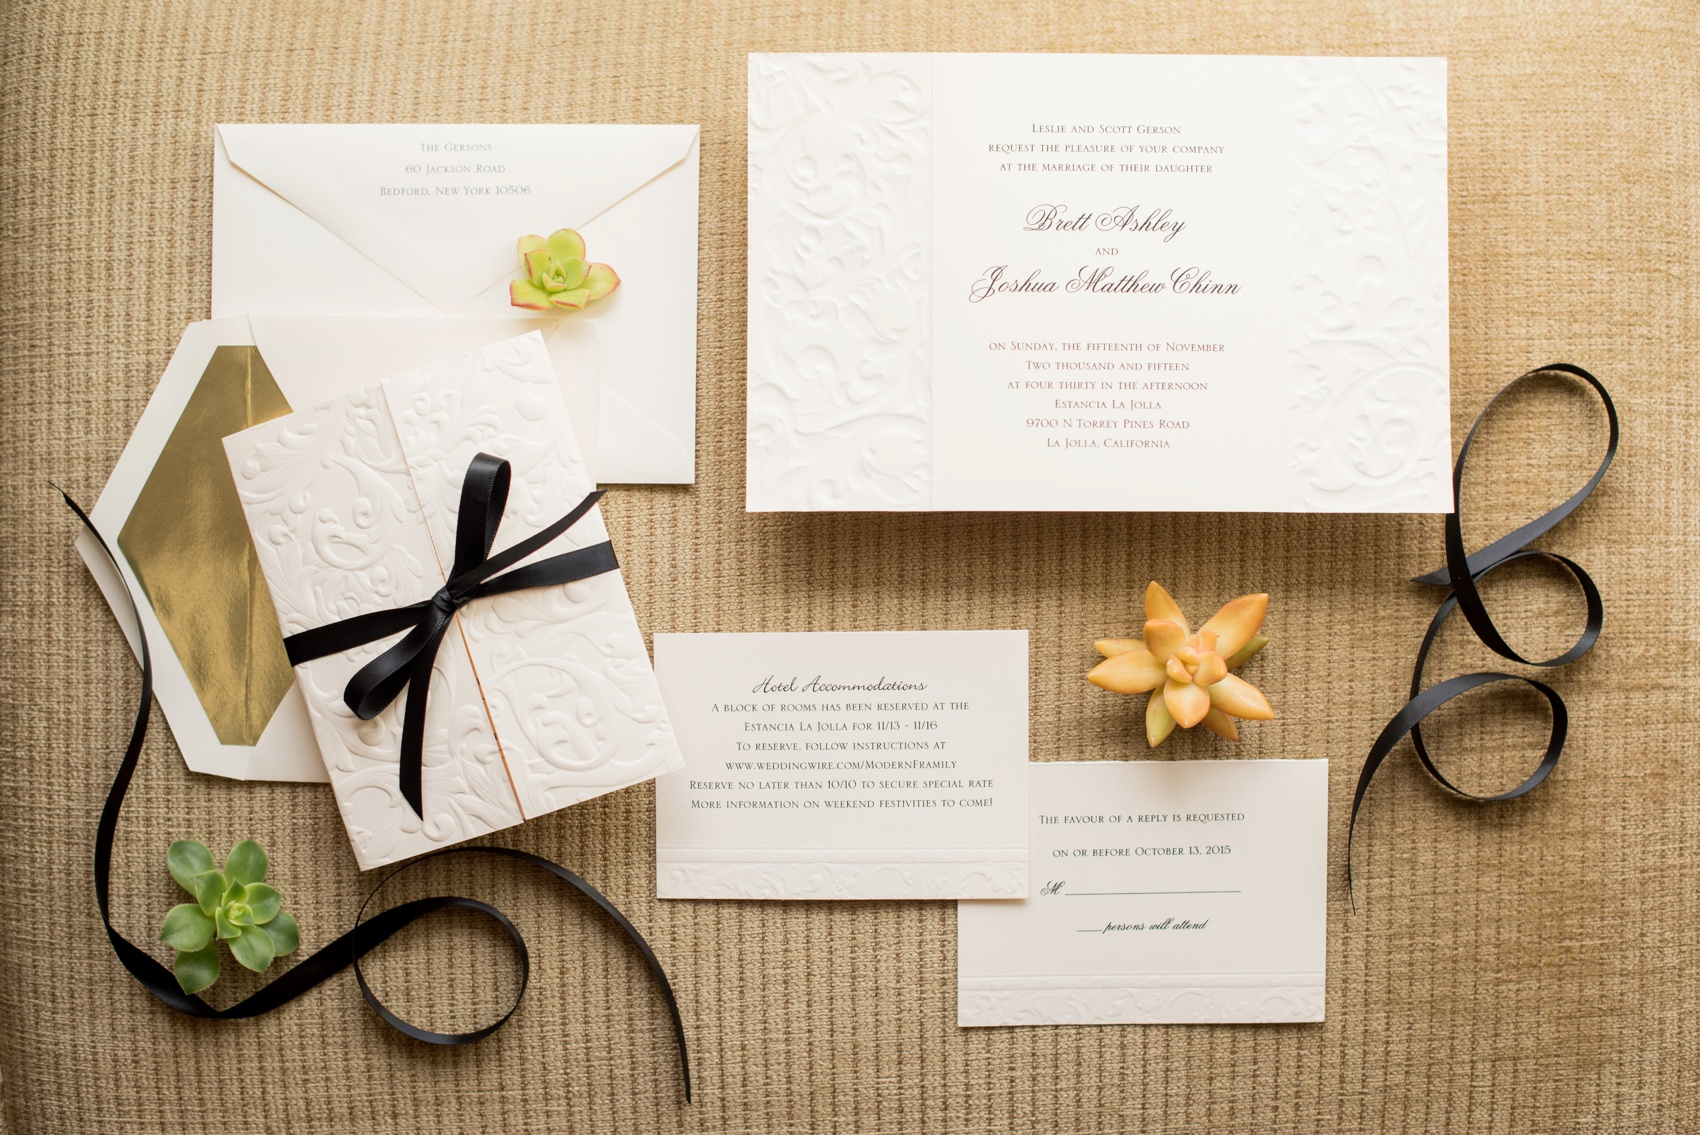 Estancia La Jolla wedding photography by Mikkel Paige Photography. Tropical wedding, California coast. Embossed ecru paper fold wedding invitations with succulent plants.